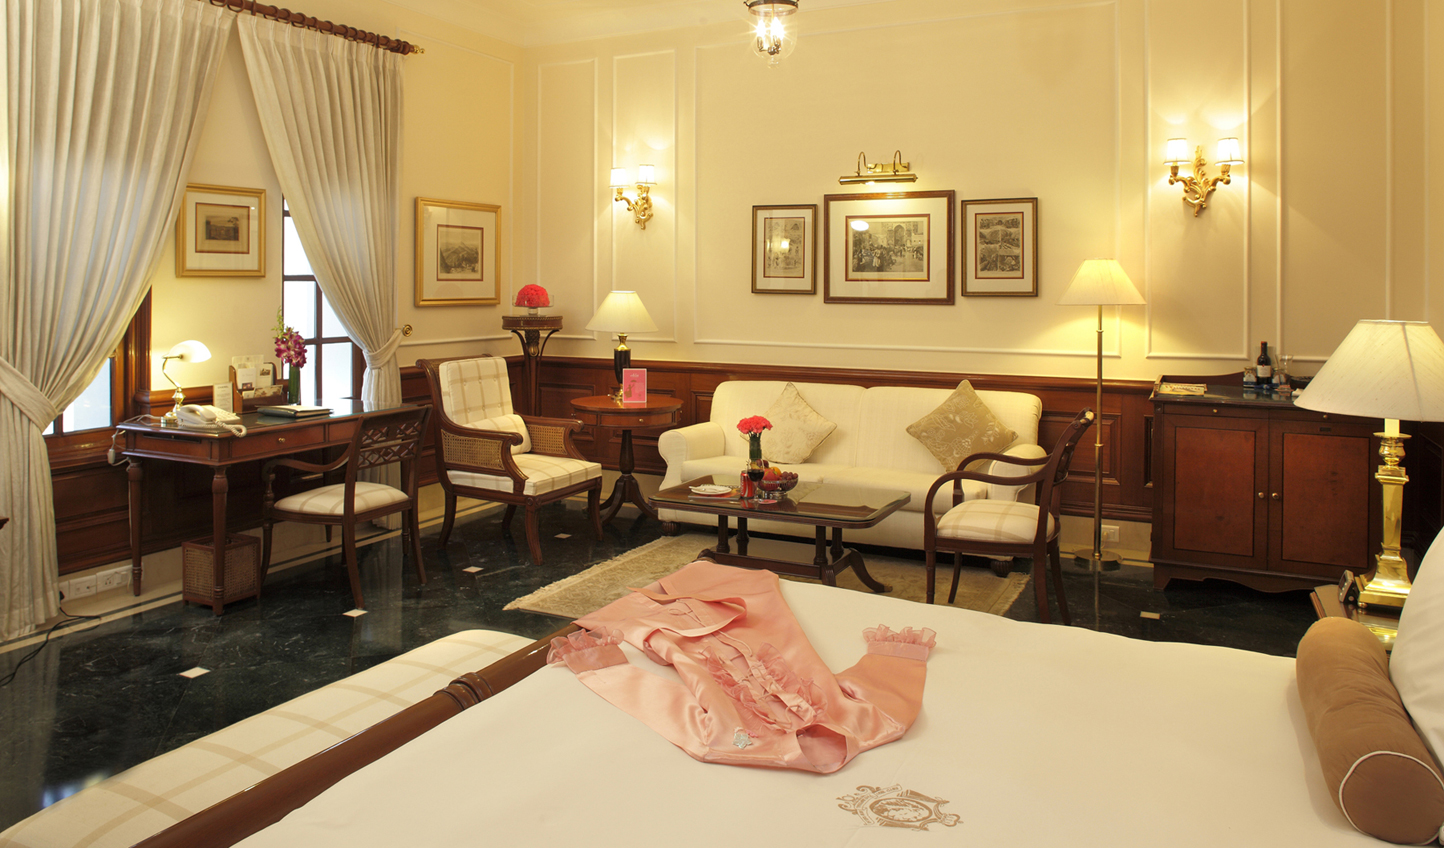 The luxurious rooms reflect The Imperial's grand sense of heritage